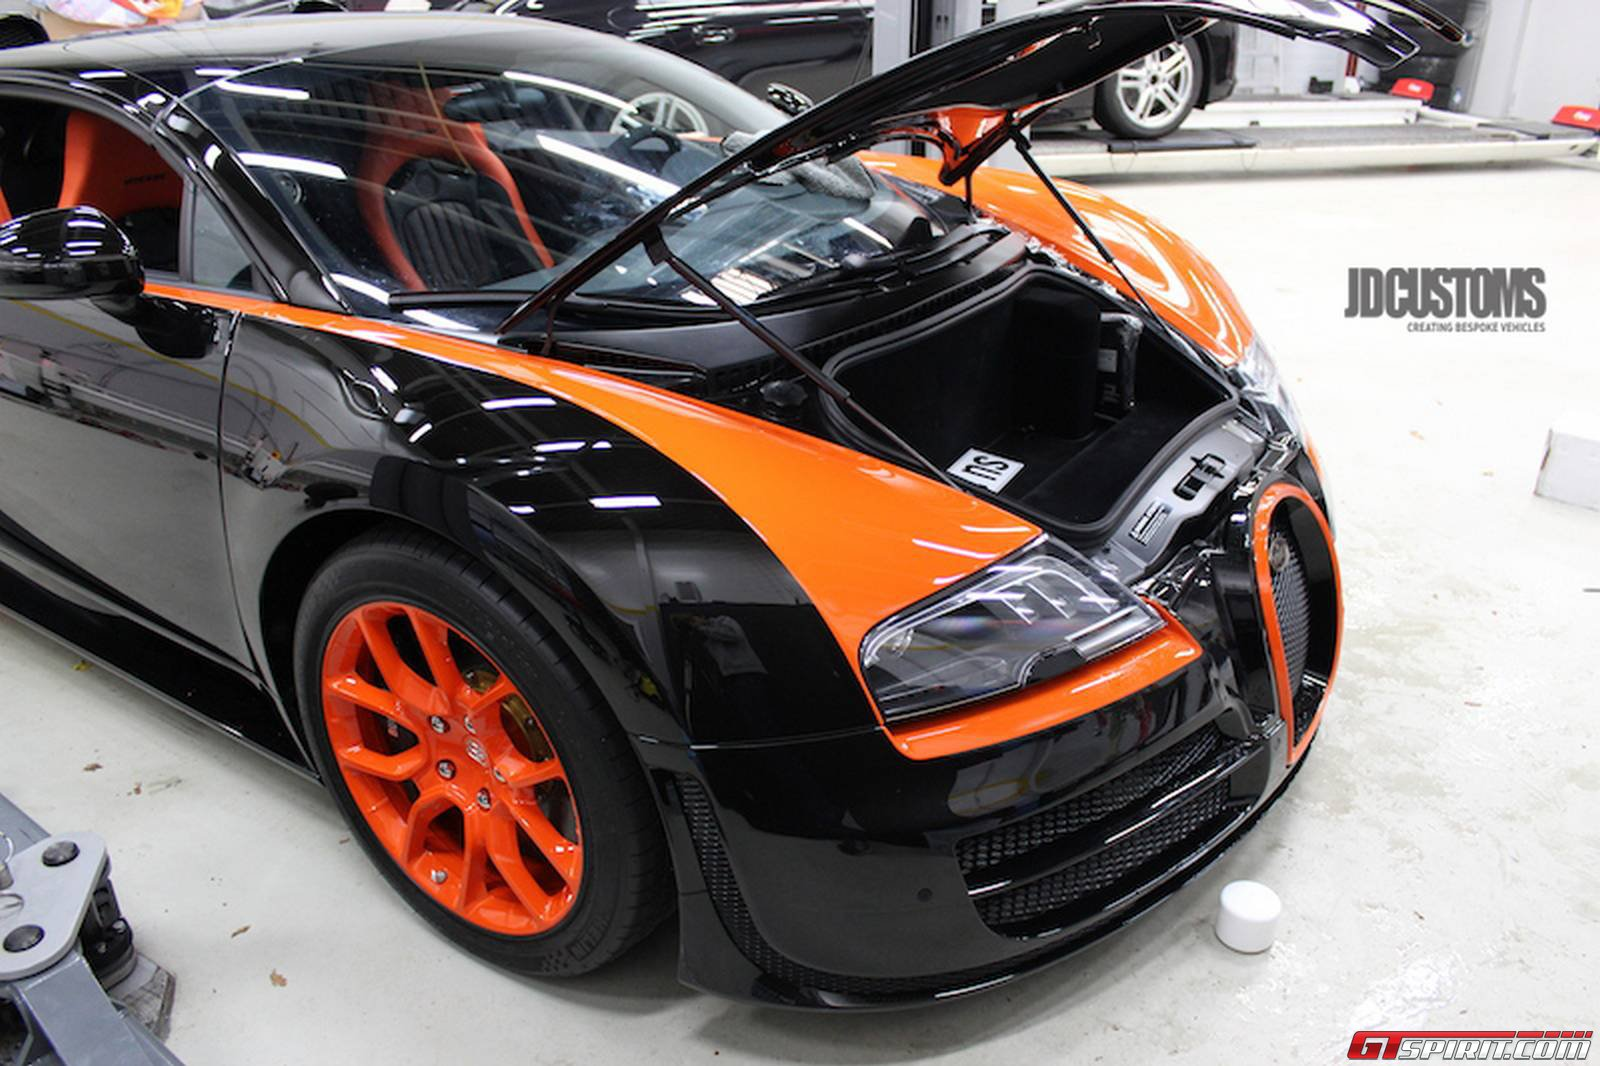 bugatti veyron grand sport vitesse wrc edition at jd customs. Black Bedroom Furniture Sets. Home Design Ideas